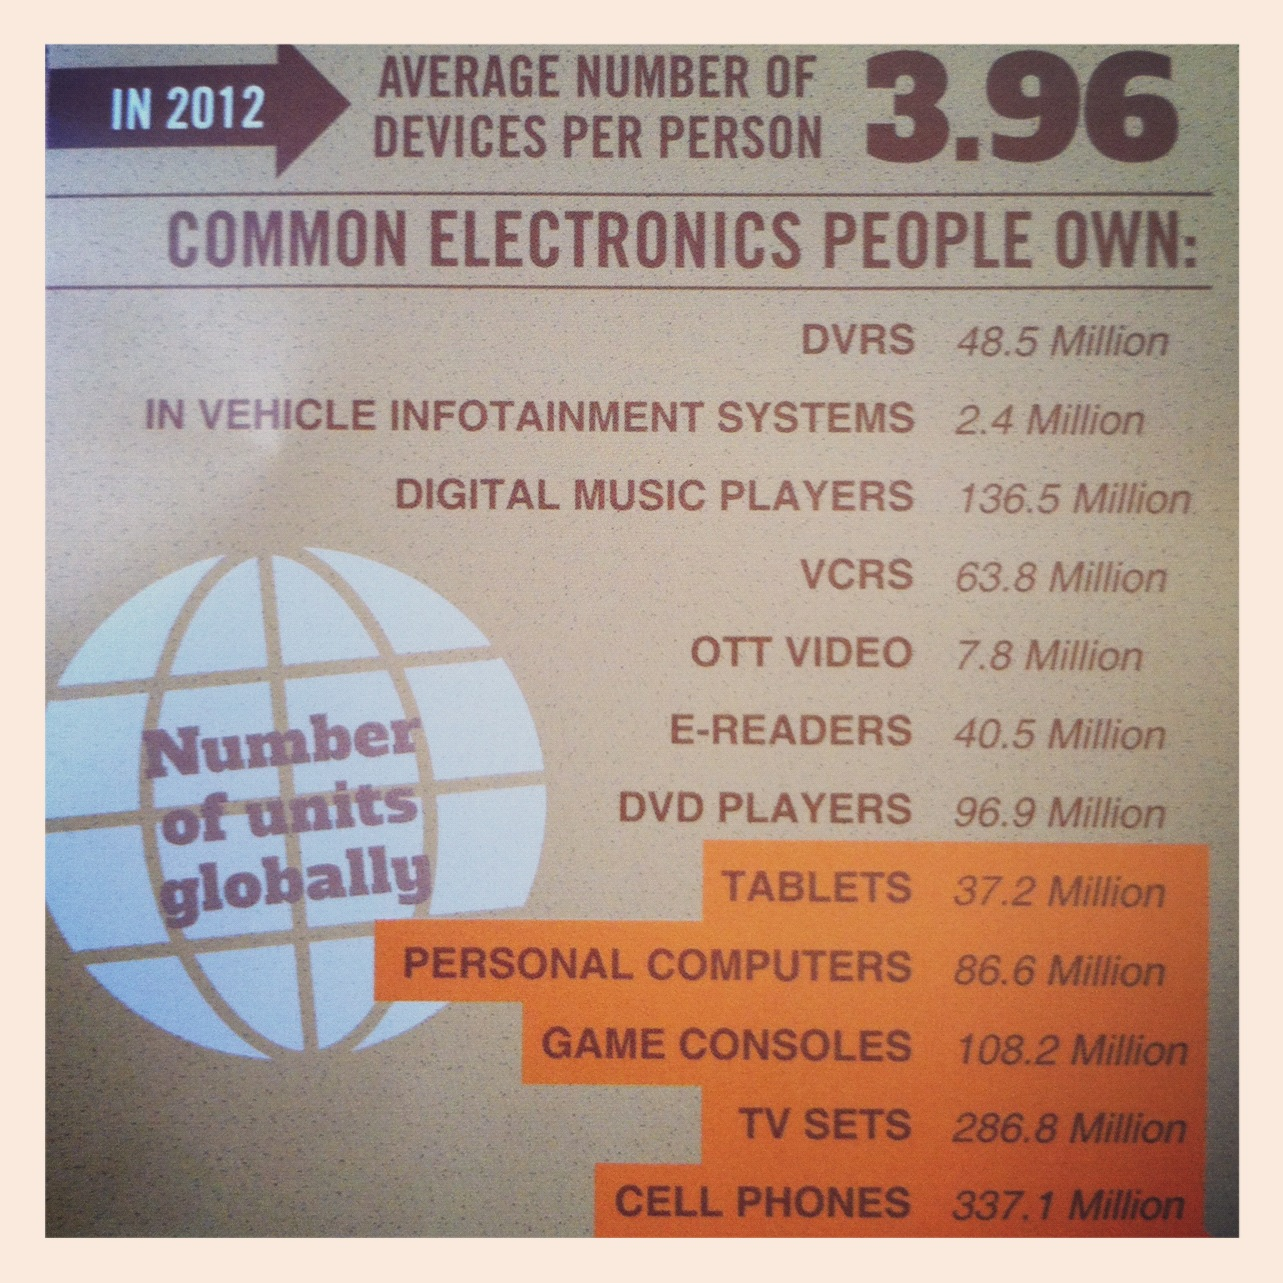 Yume electronics per person 2012